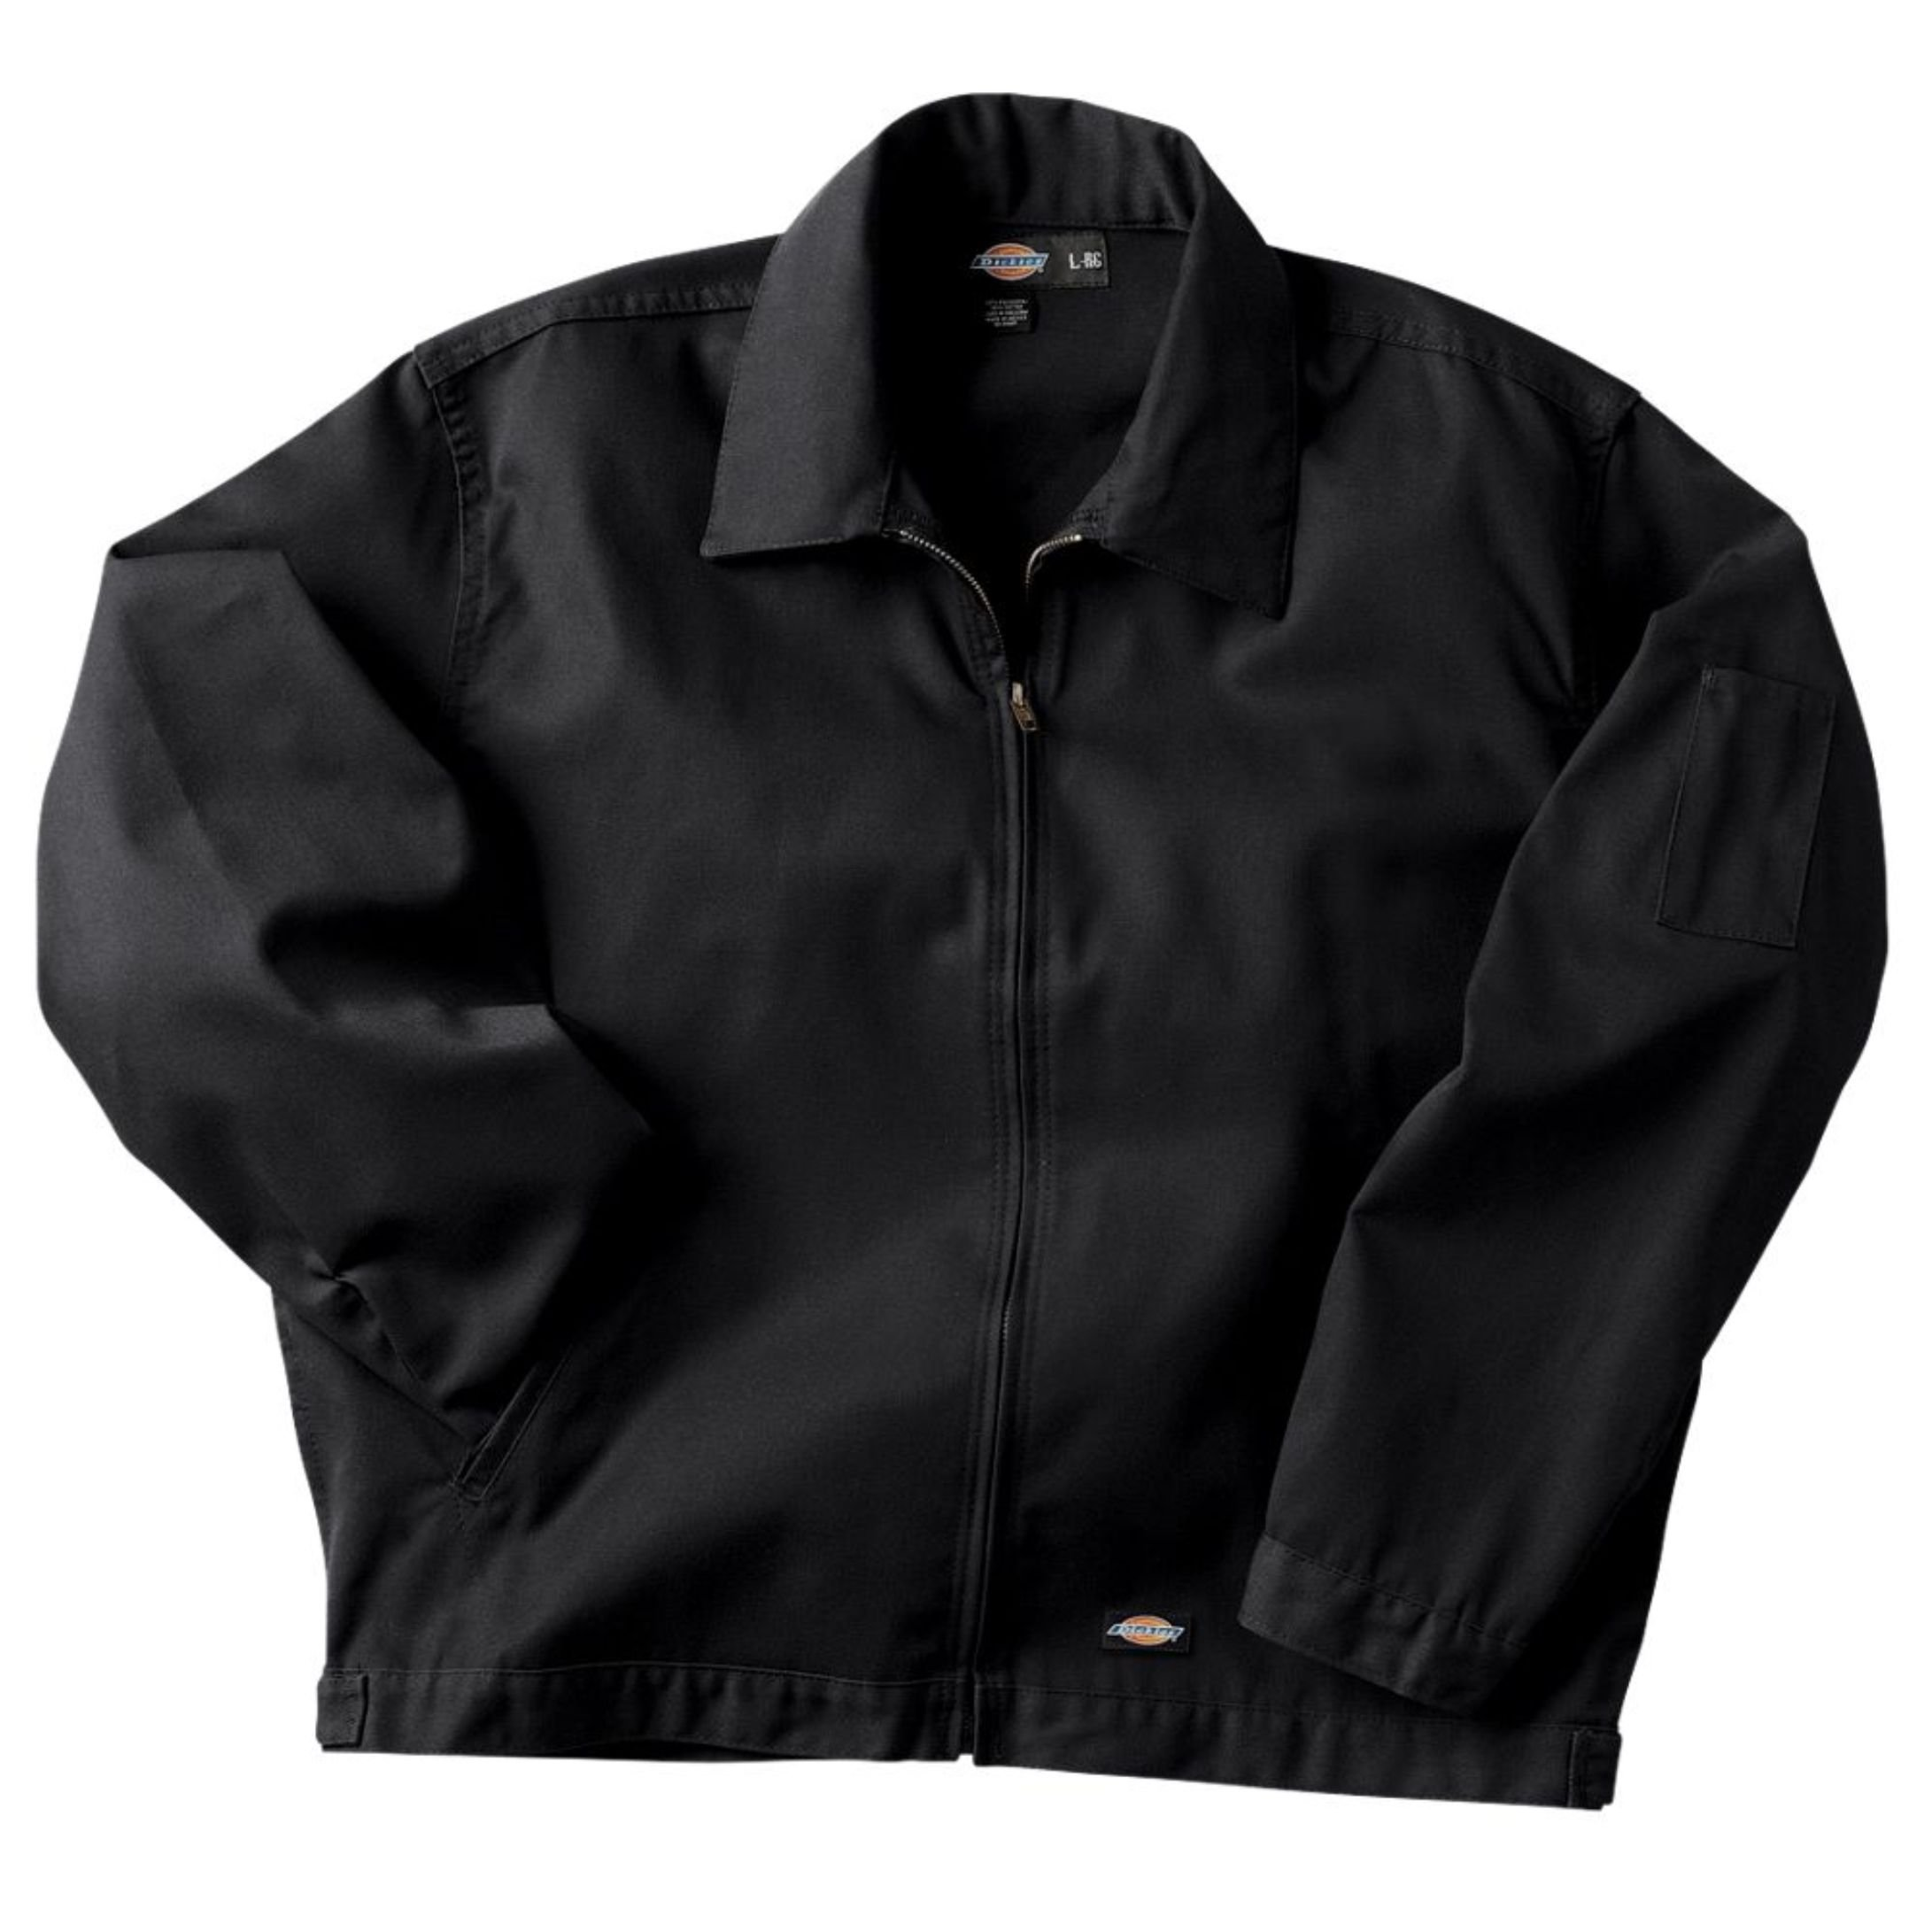 Dickies Men's Unlined Eisenhower Jacket, Black, Large